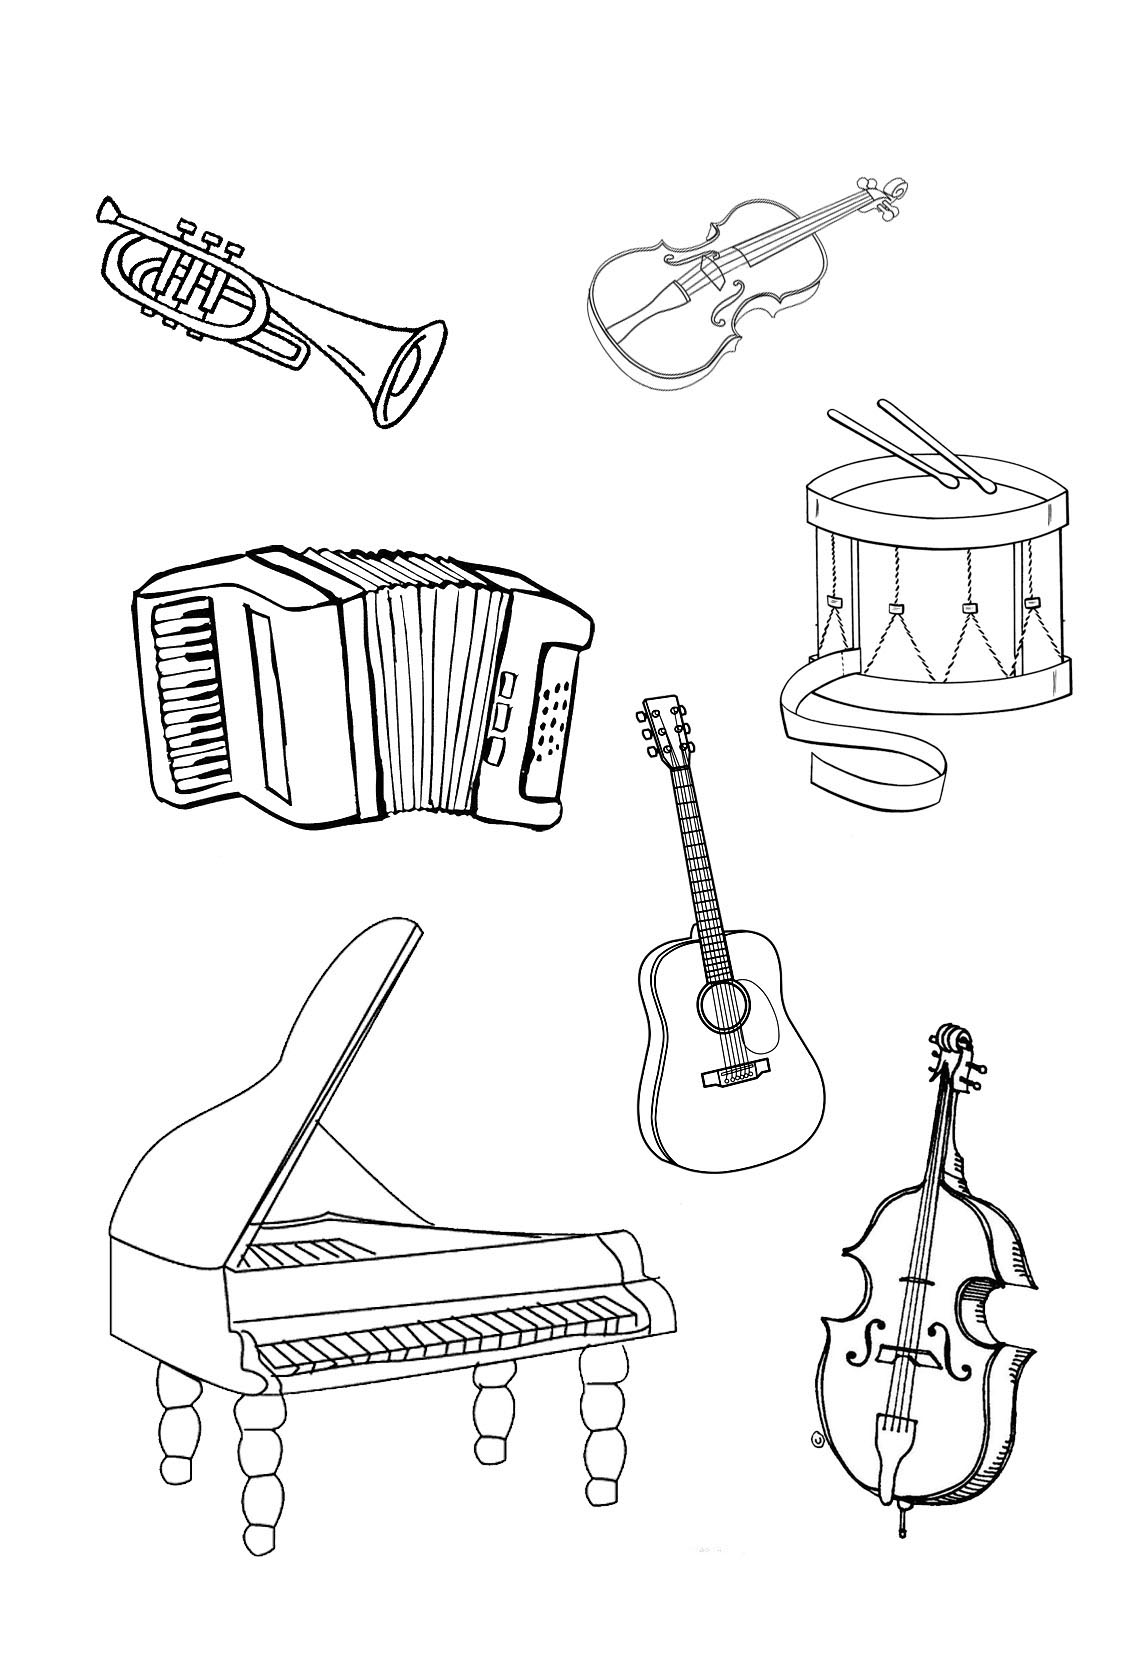 colouring pictures of musical instruments musical instruments coloring pages to download and print pictures instruments of musical colouring